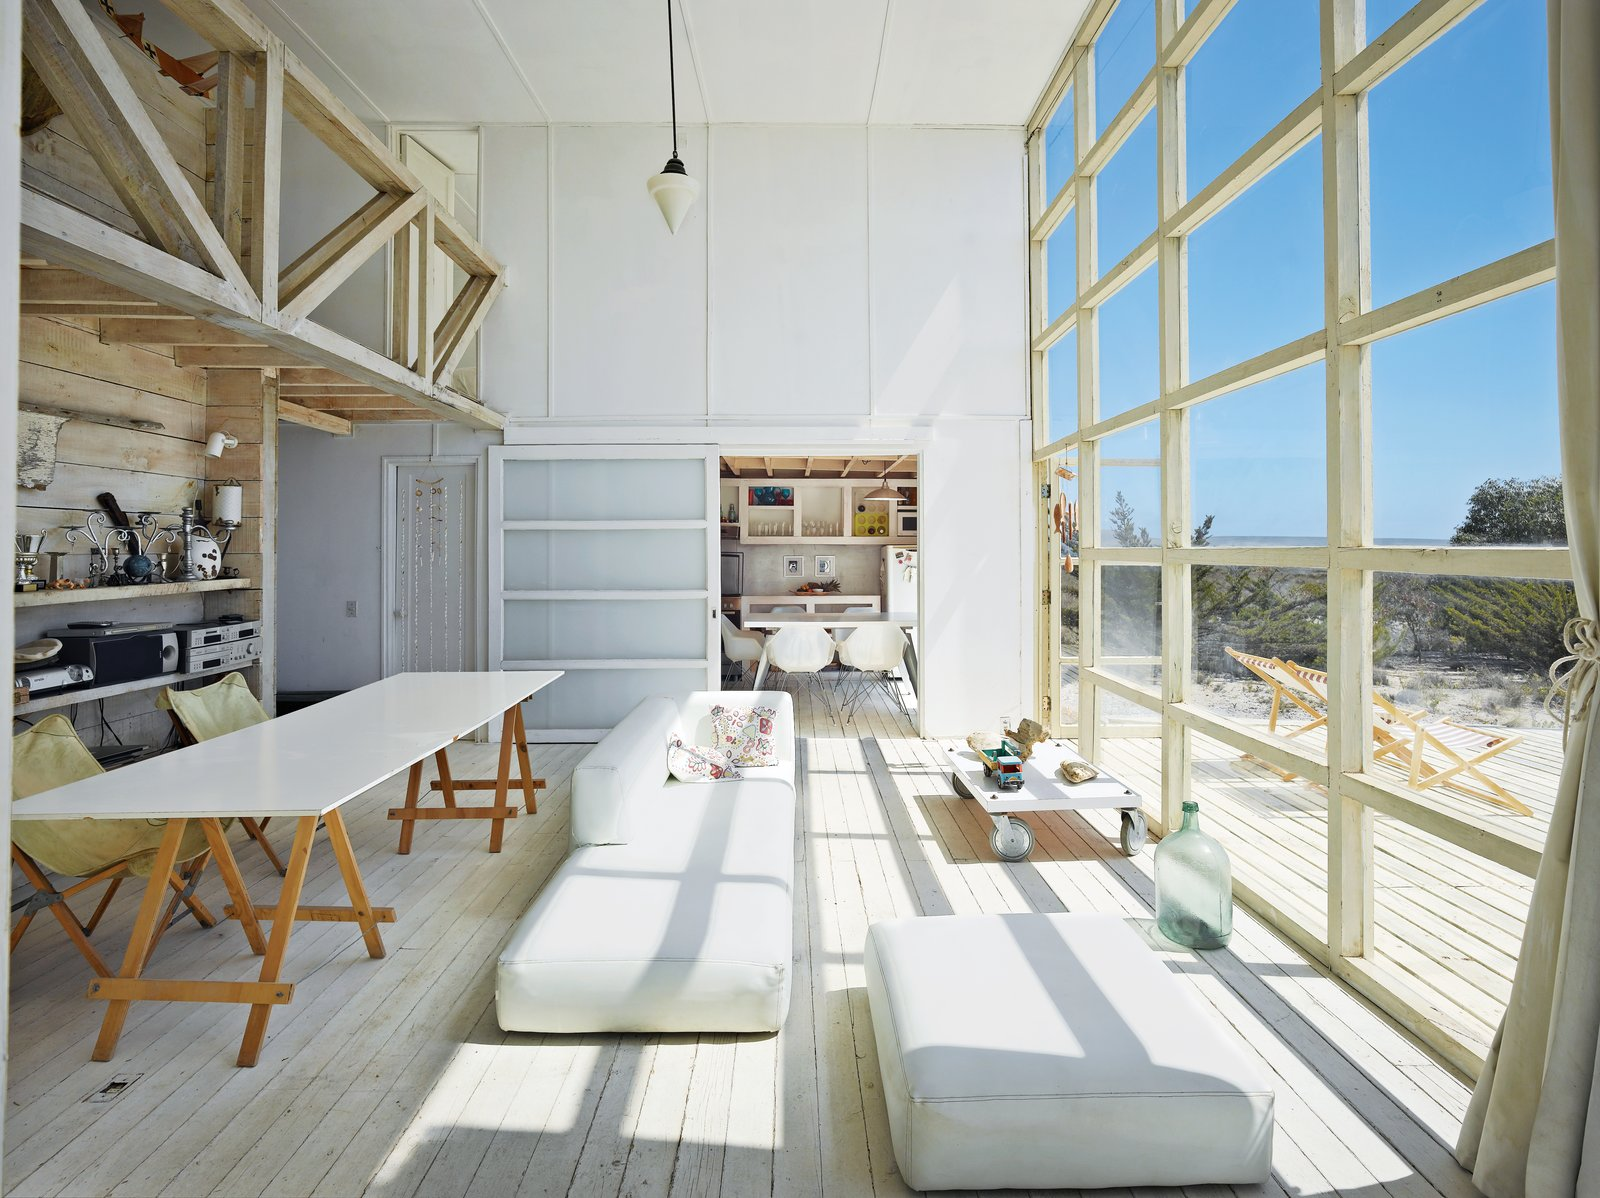 The northern facade, which faces the water, takes in the view via double-height windows in the main living room, plus terraces punched into the second floor.  Photo 1 of 2 in A Simple Geometric Bayfront Home in Chile